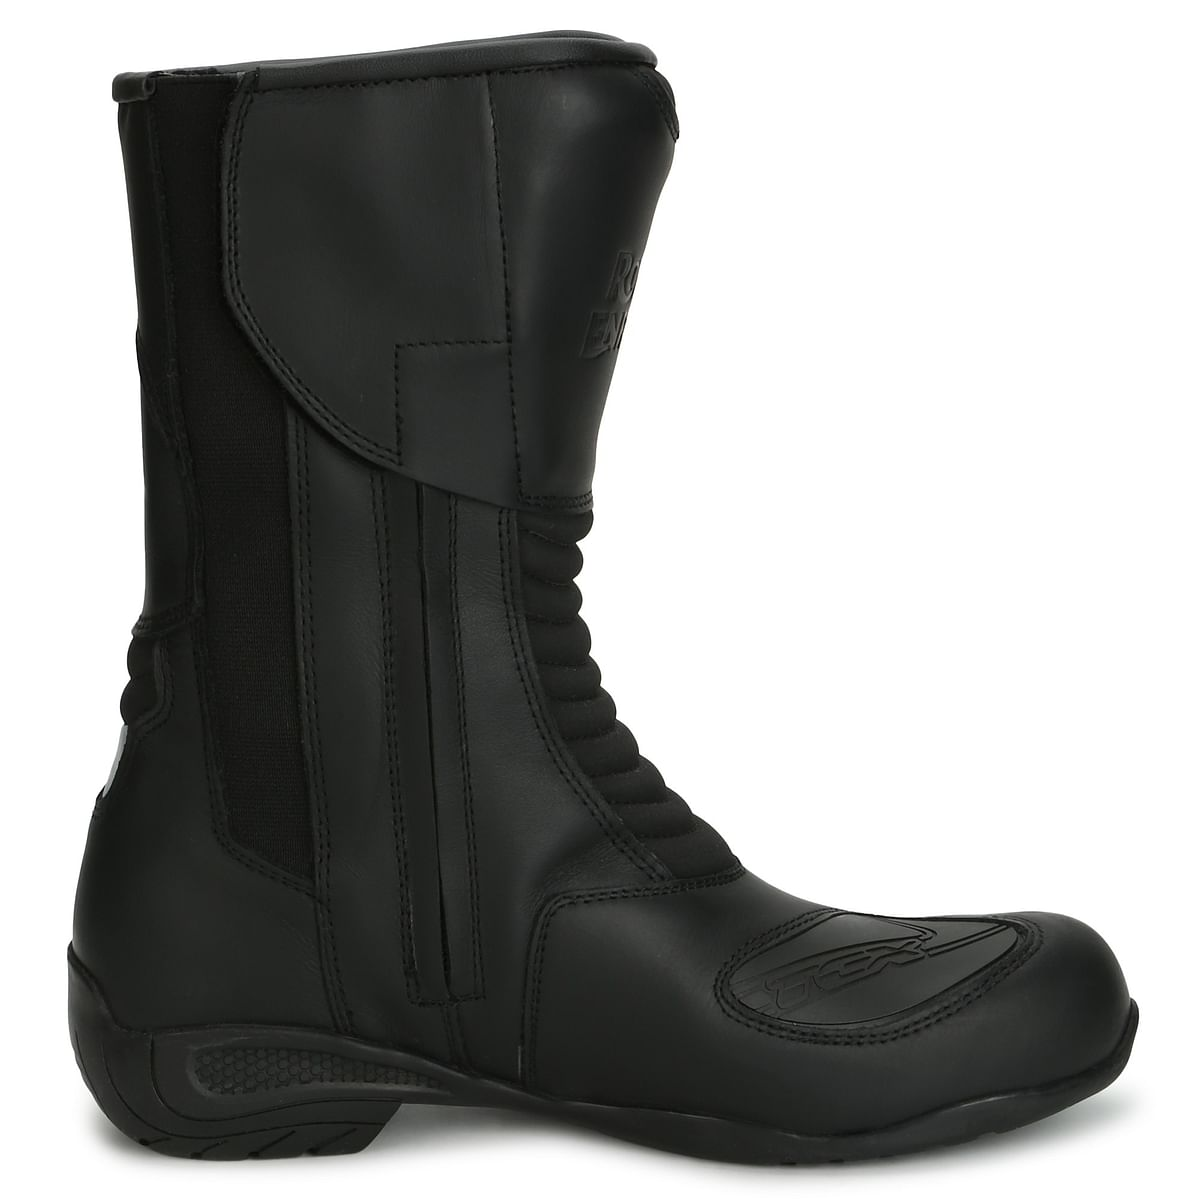 The Klausen Lady Riding WP Boots sit in the middle of the TCX lineup